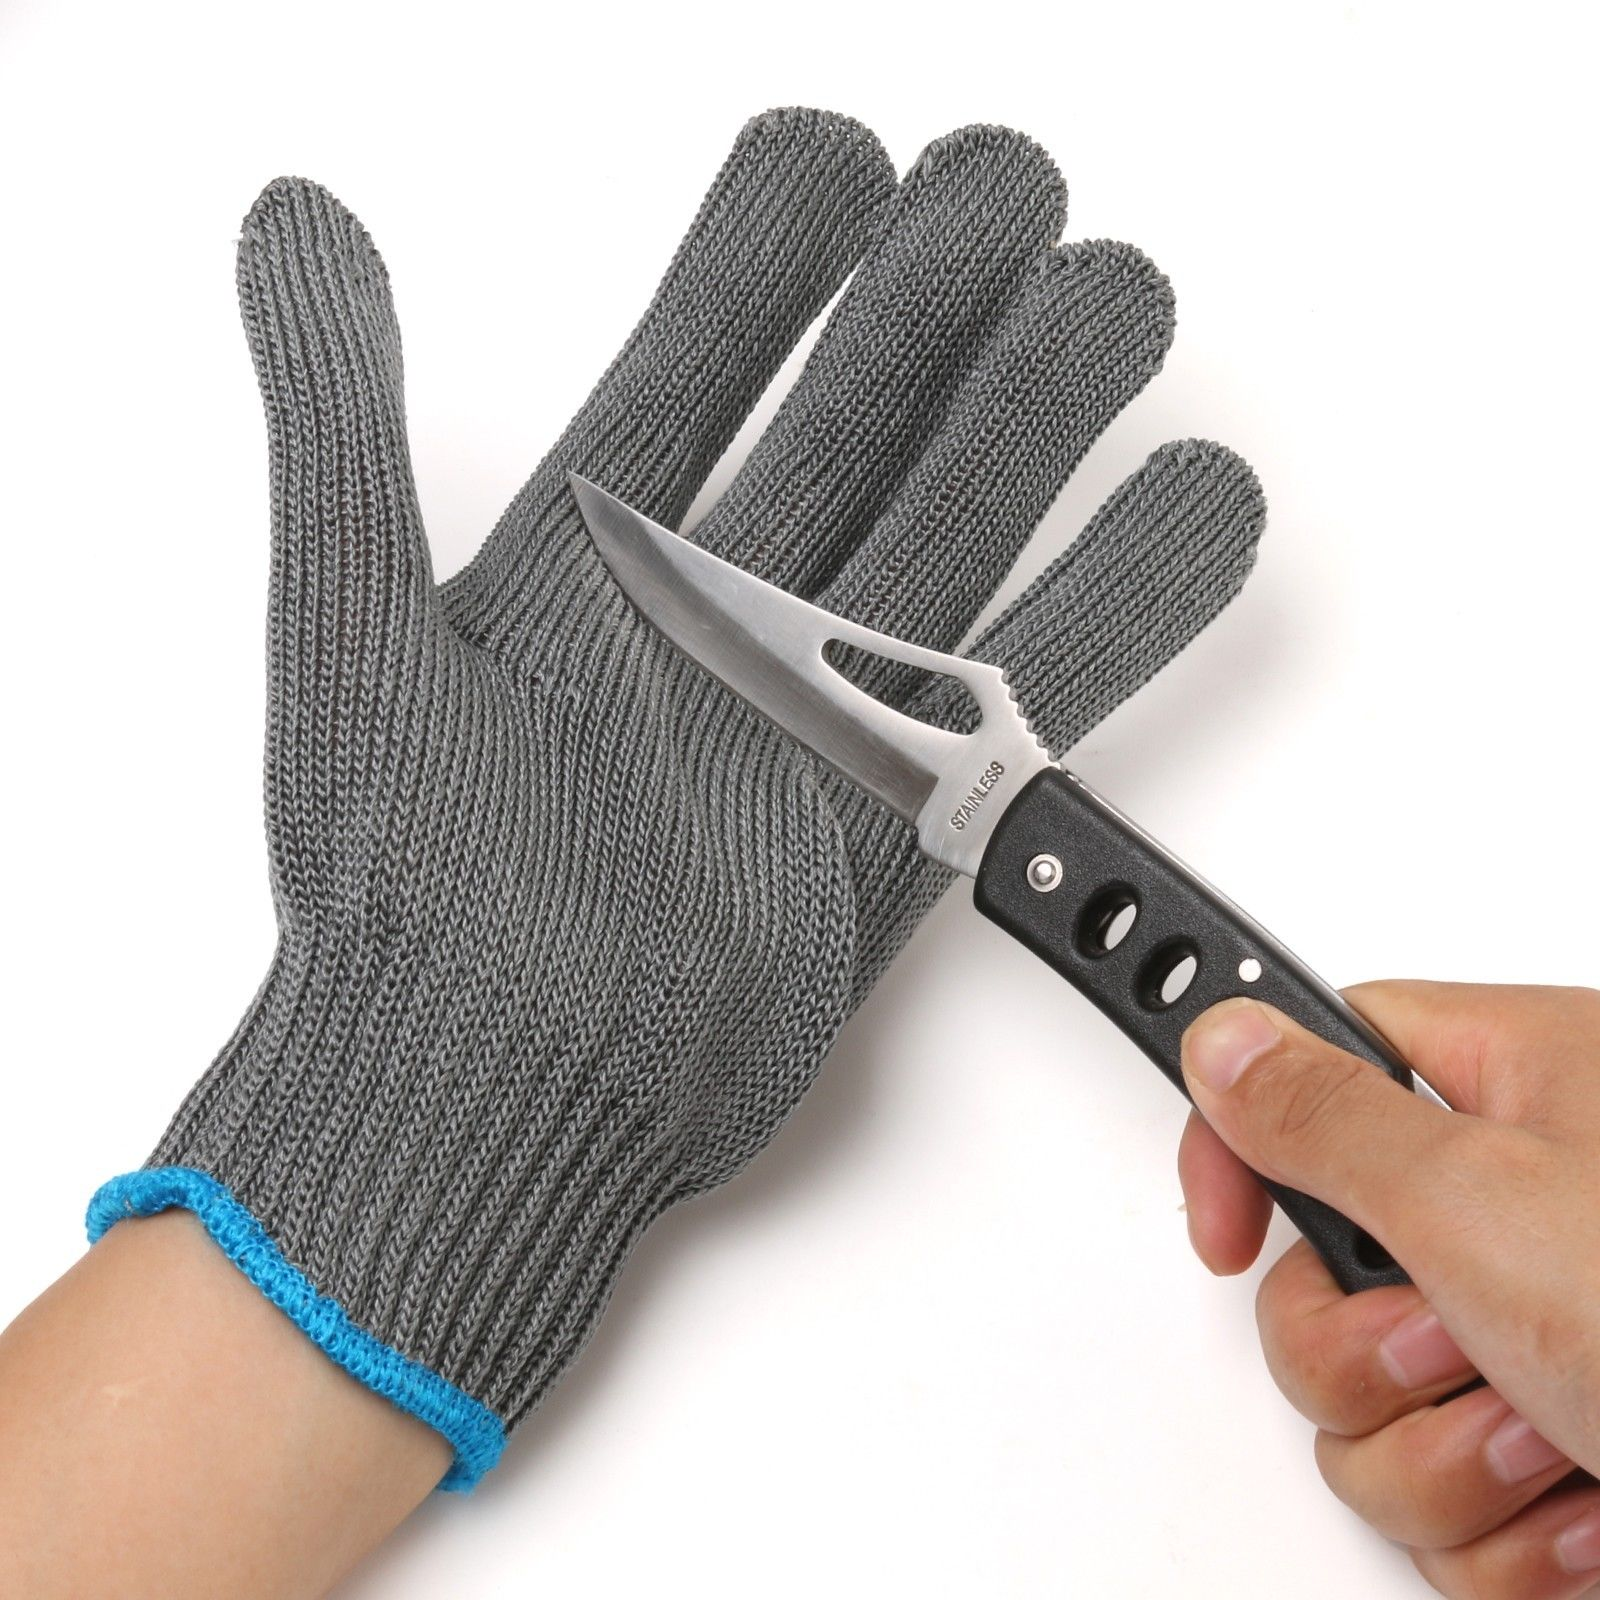 Thread Weave Cut Resistant Fillet Knife Glove Protective Anti Slip Fishing Gloves